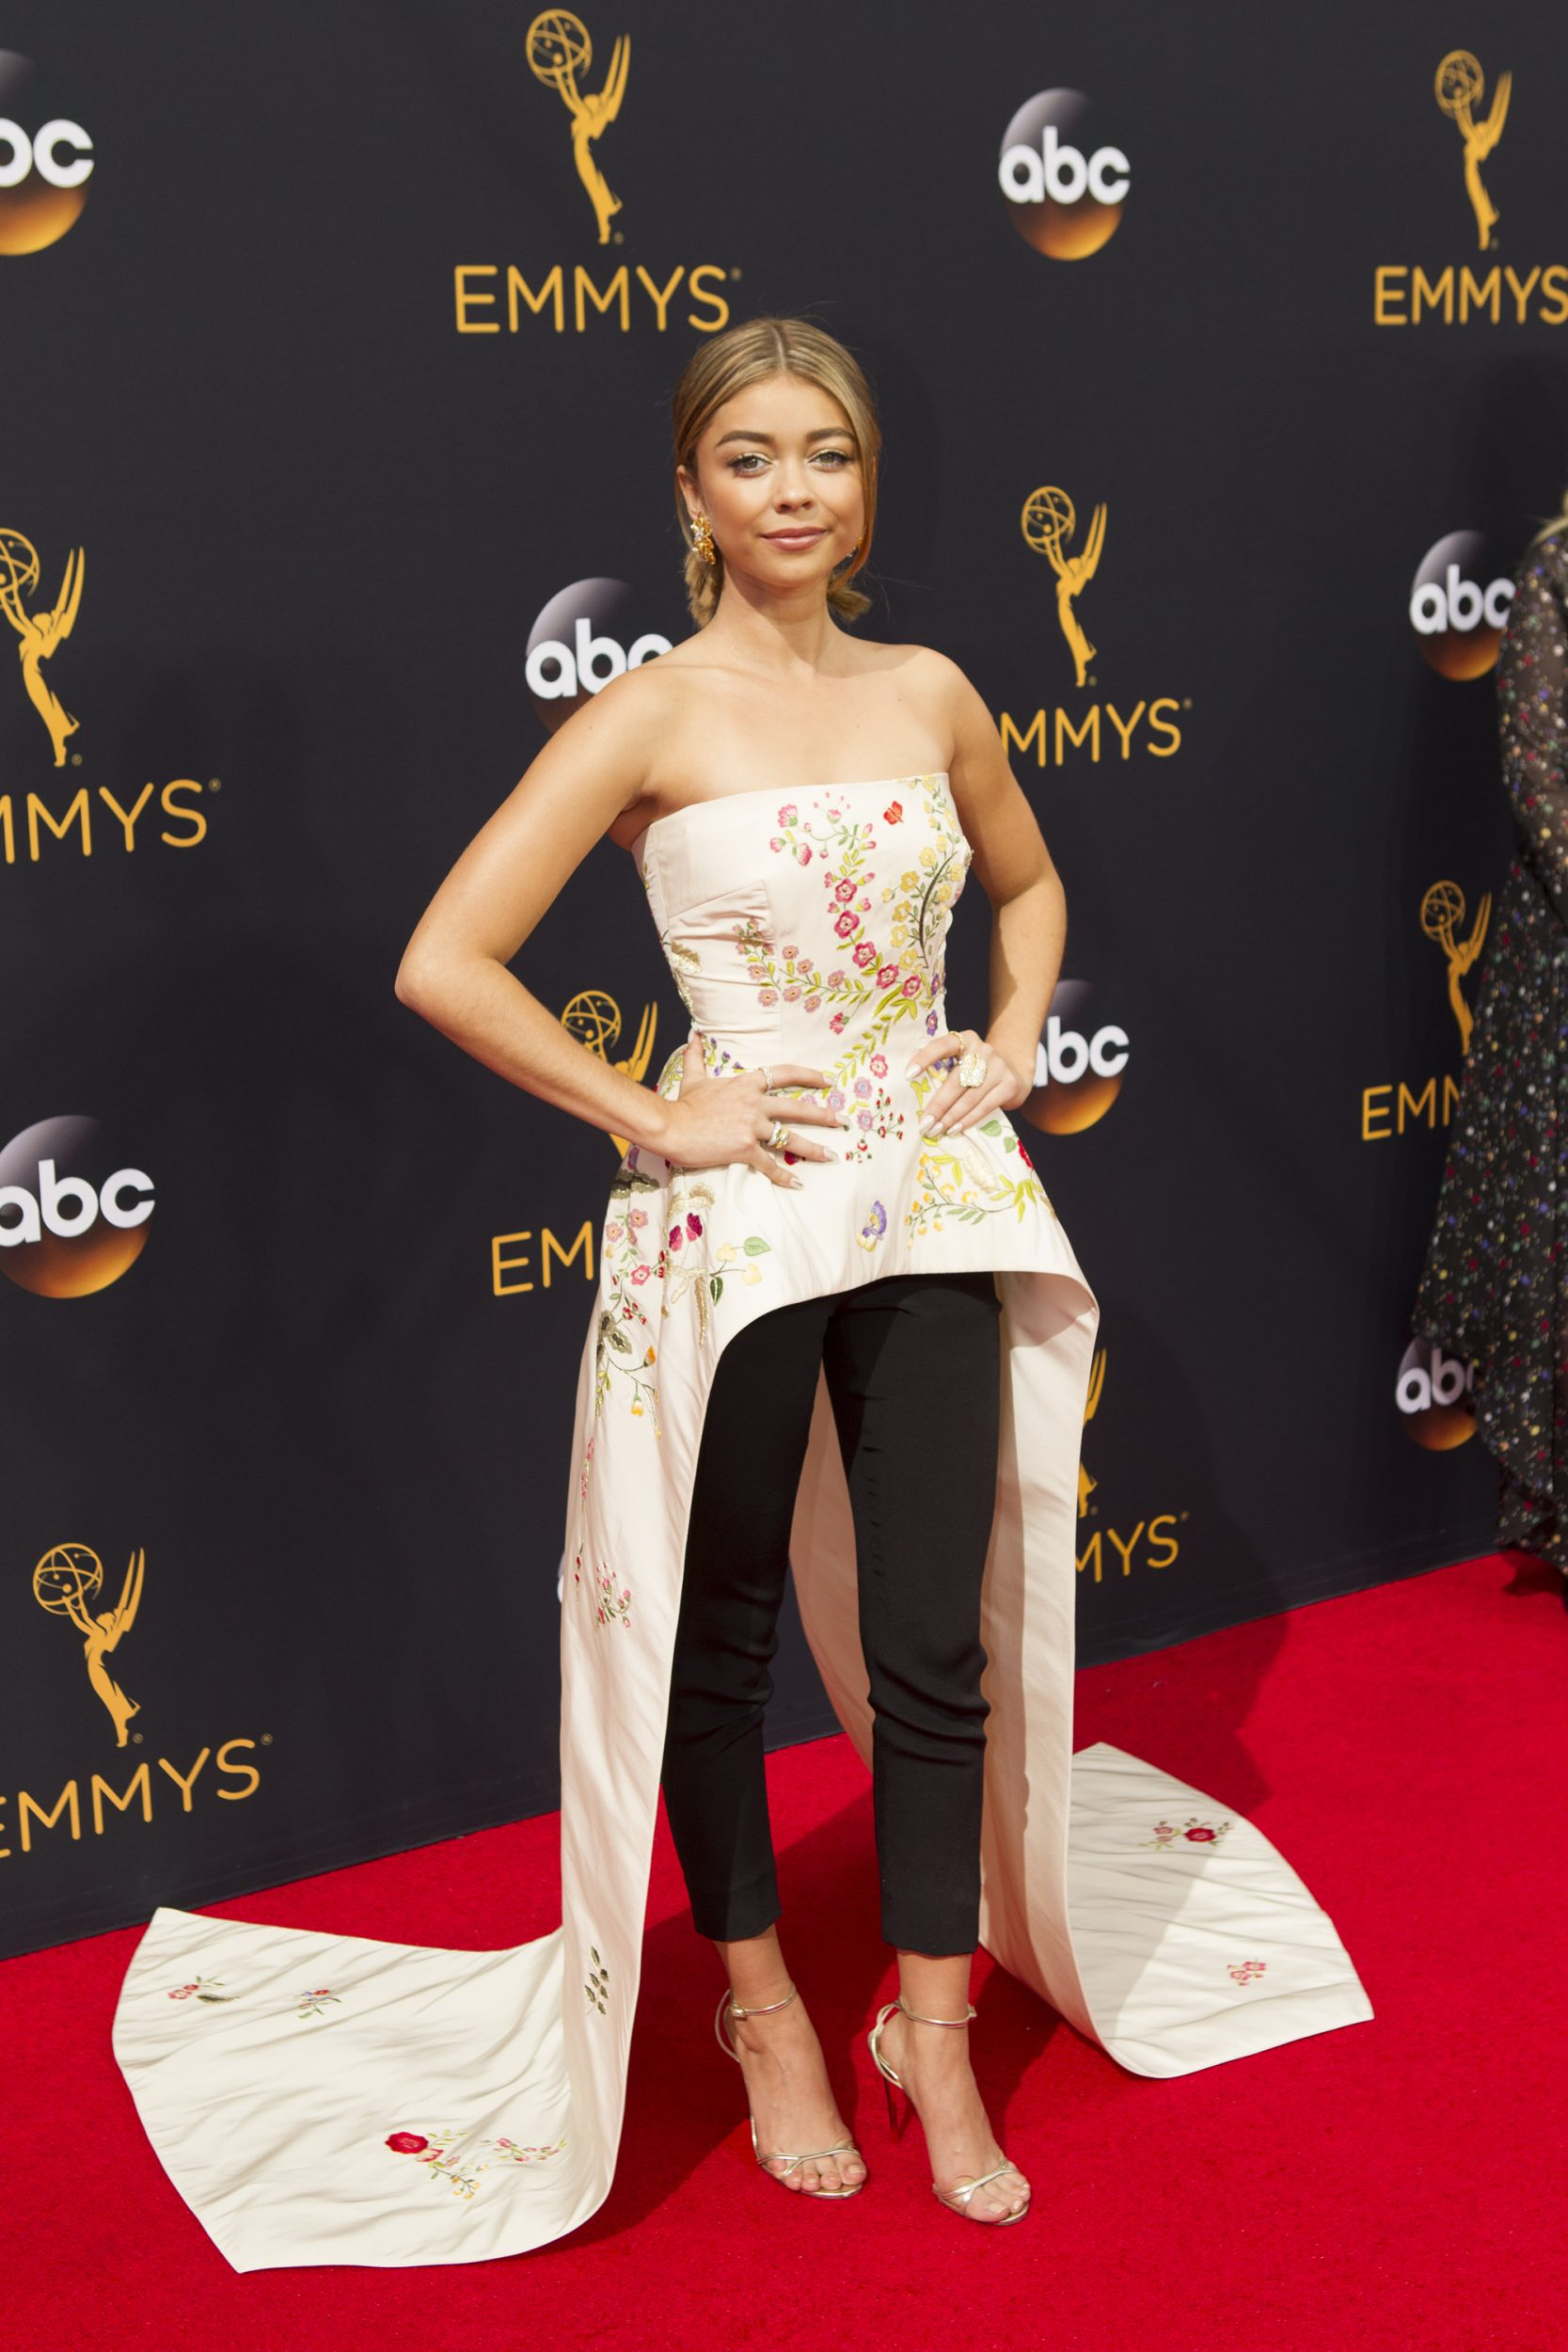 """THE 68TH EMMY(r) AWARDS - """"The 68th Emmy Awards"""" broadcasts live from The Microsoft Theater in Los Angeles, Sunday, September 18 (7:00-11:00 p.m. EDT/4:00-8:00 p.m. PDT), on ABC and is hosted by Jimmy Kimmel. (ABC/Rick Rowell) SARAH HYLAND"""